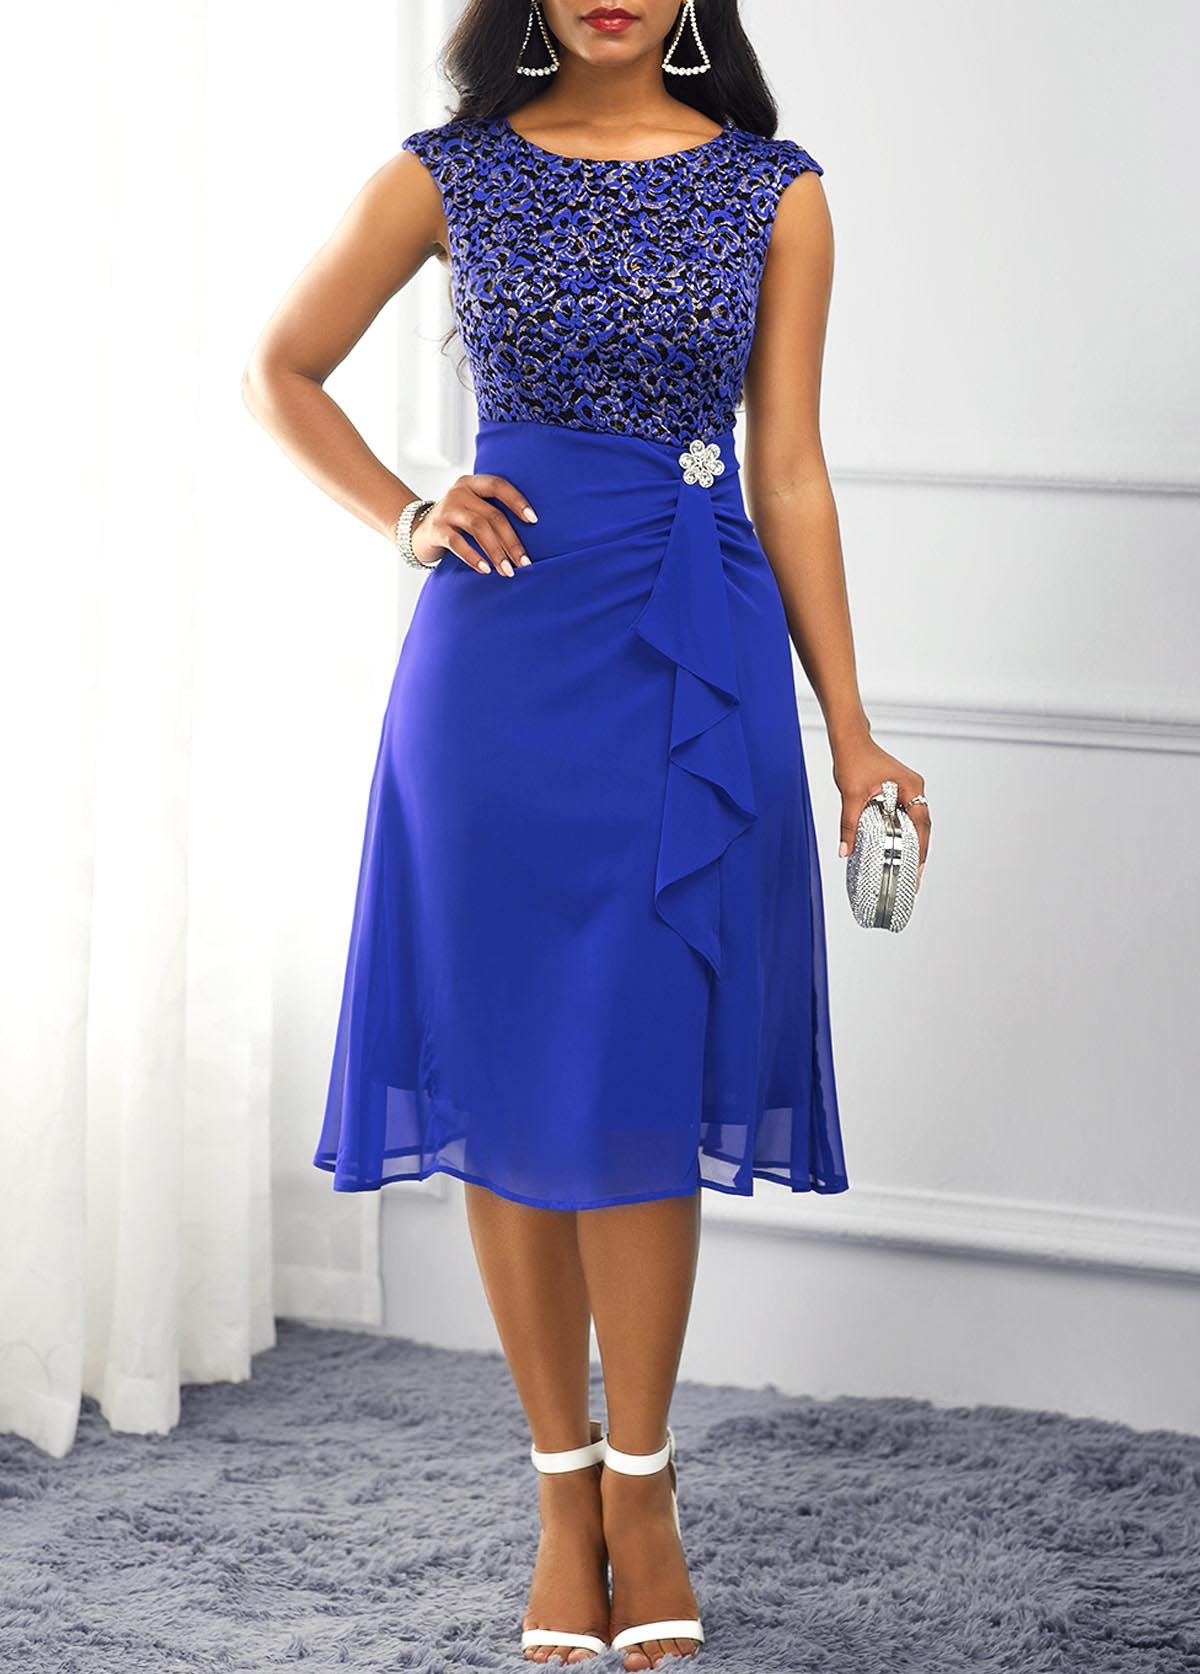 ROTITA Lace Panel Royal Blue Ruffle Trim Dress